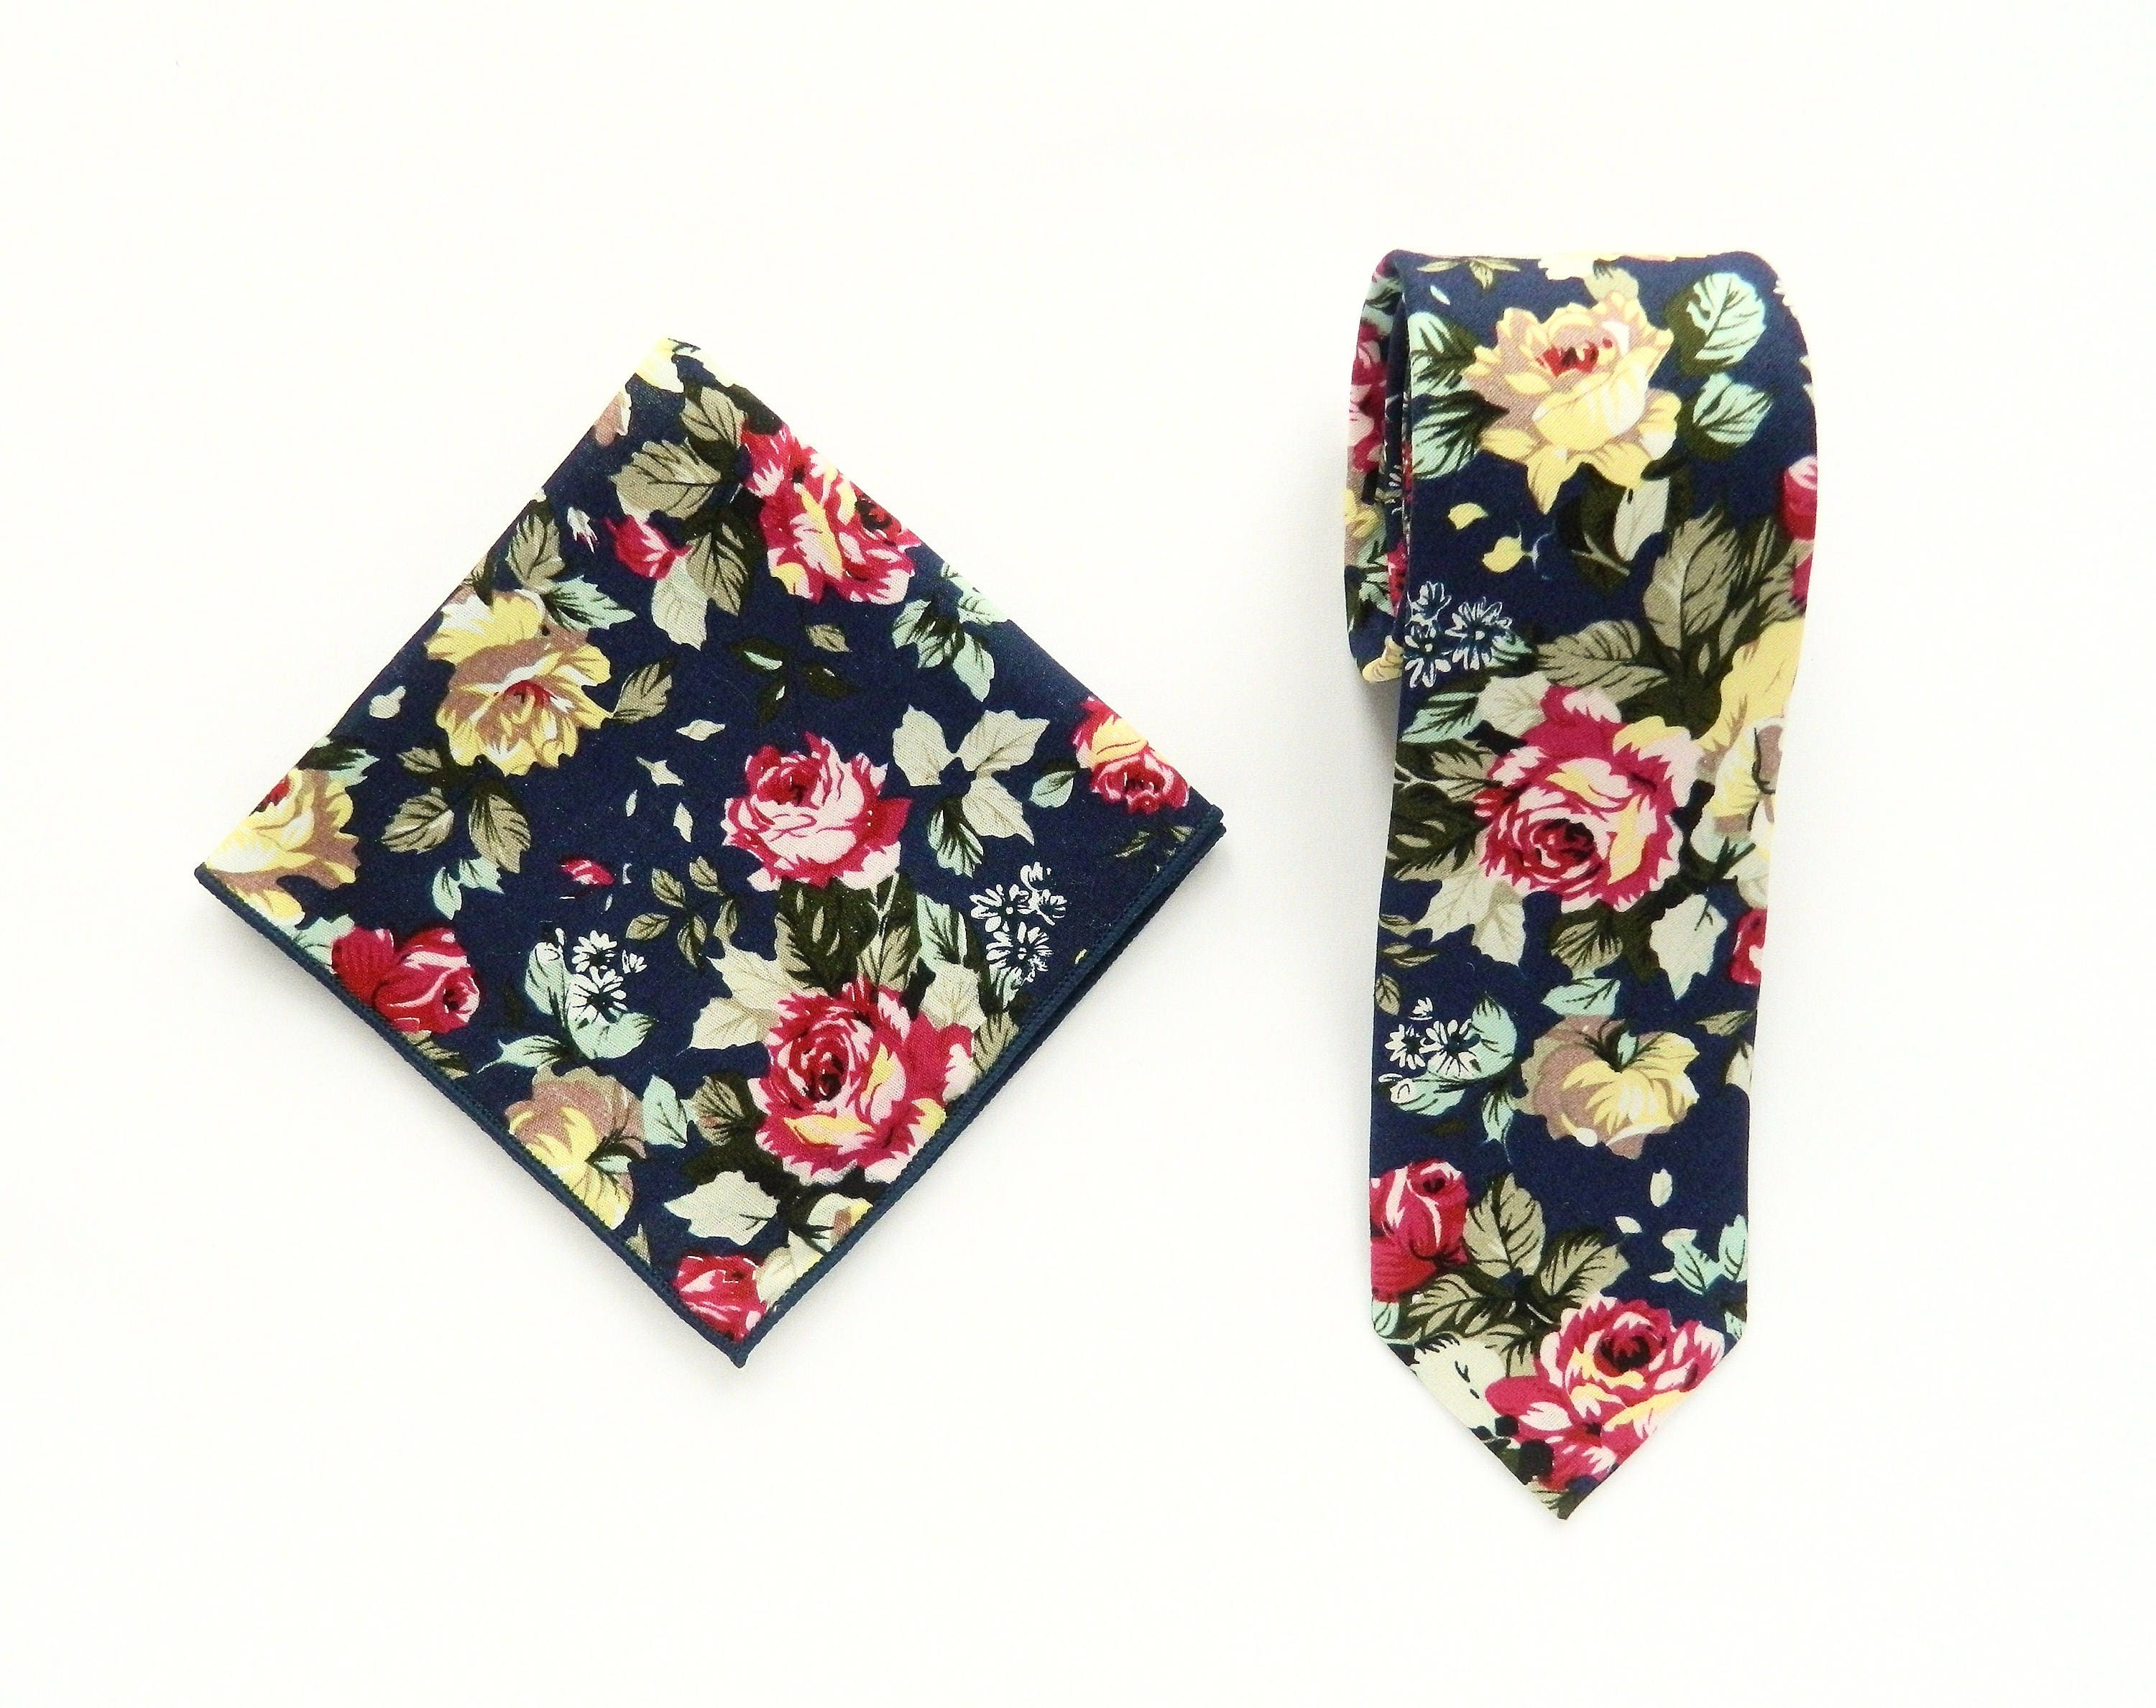 Dark navy floral tie pocket square wedding tie skinny floral navy tie pocket square groomsmen uk